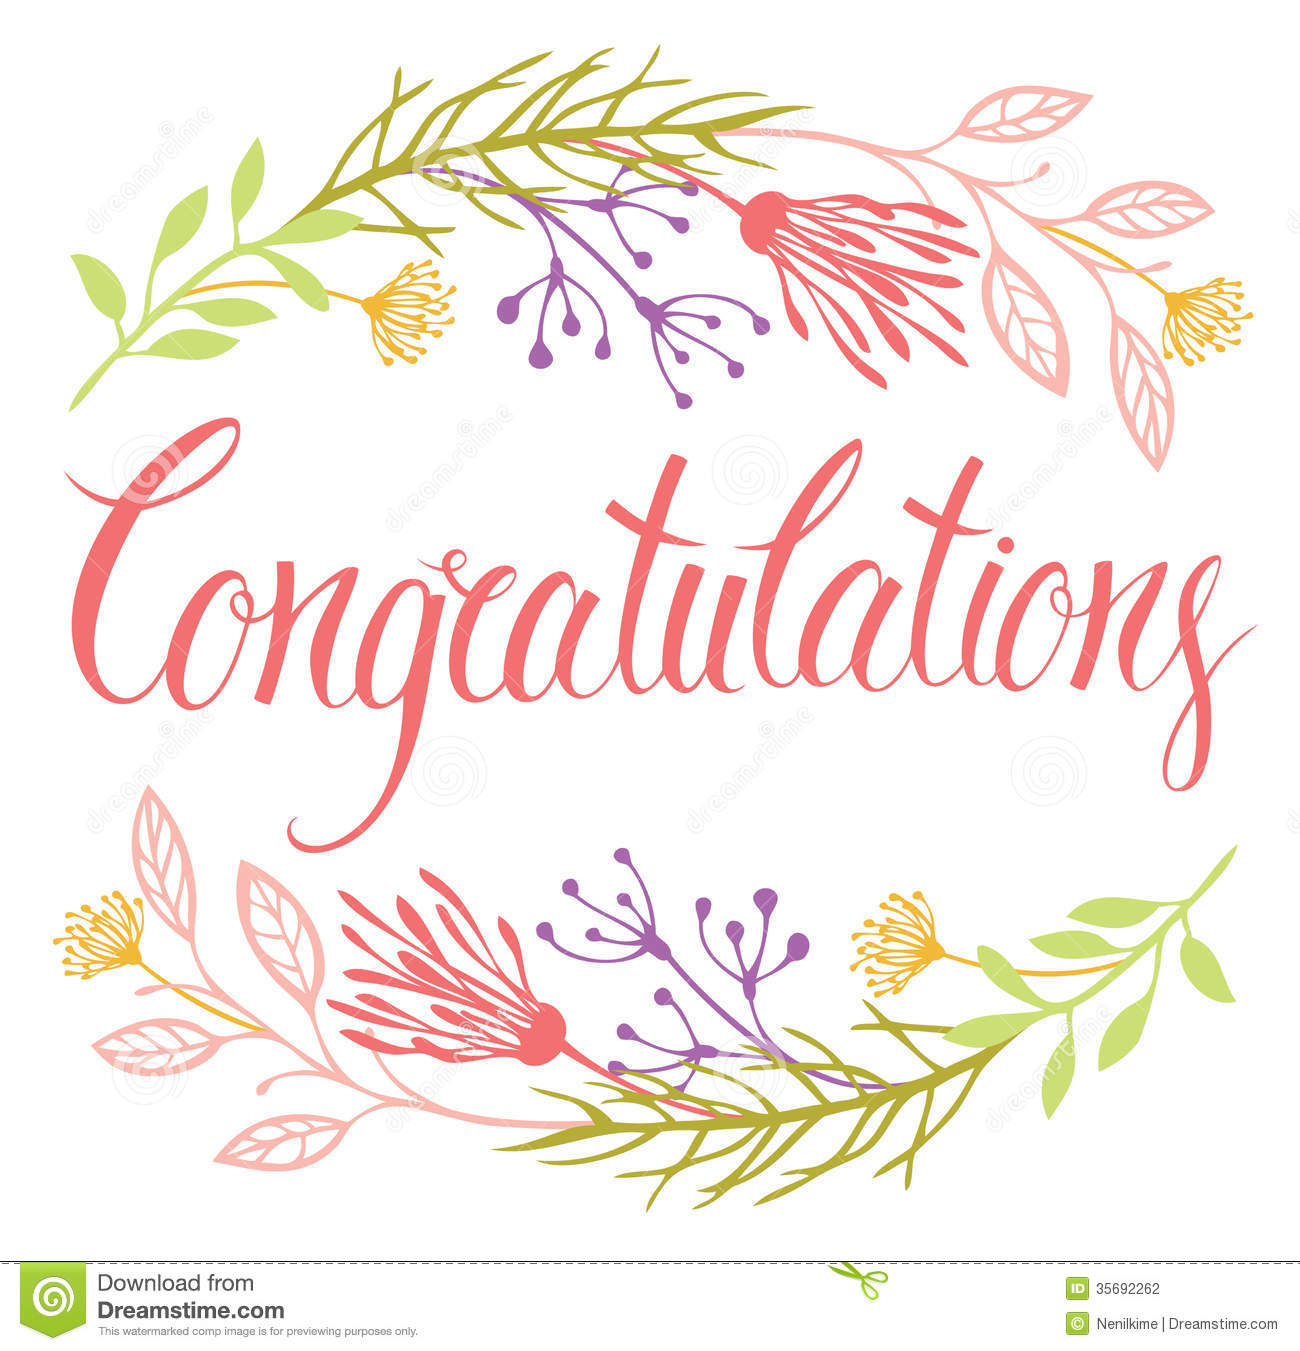 Congratulations Card Stock Illustration - Image: 48323120